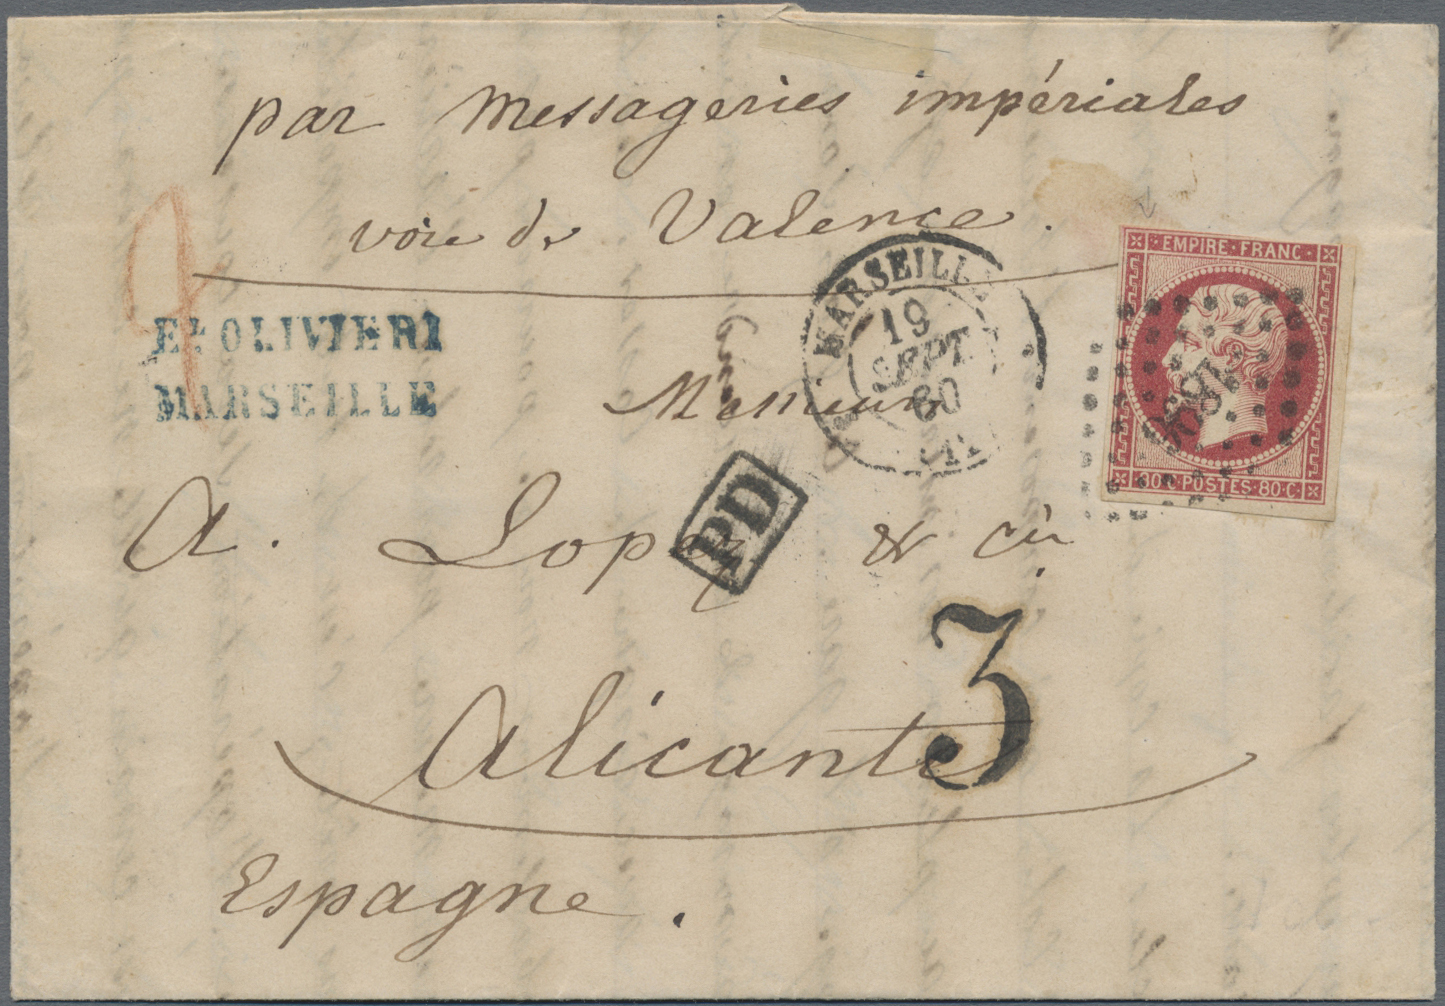 Lot 17955 - schiffspost alle welt  -  Auktionshaus Christoph Gärtner GmbH & Co. KG Sale #49 Collections Overseas, Thematics, Europe, Germany/Estates